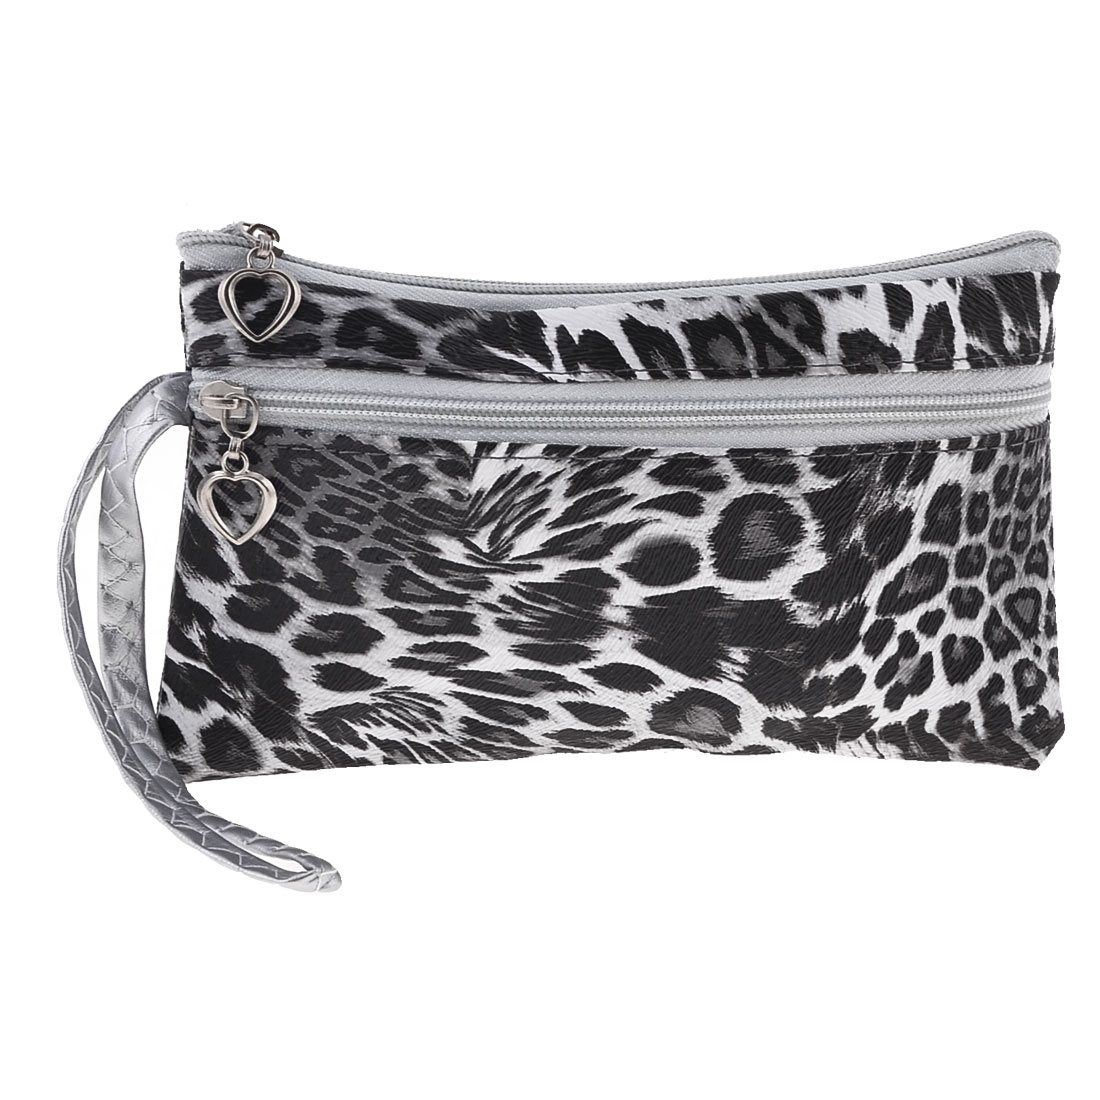 Zippered Retangle White Black Purse Wallet for Lady